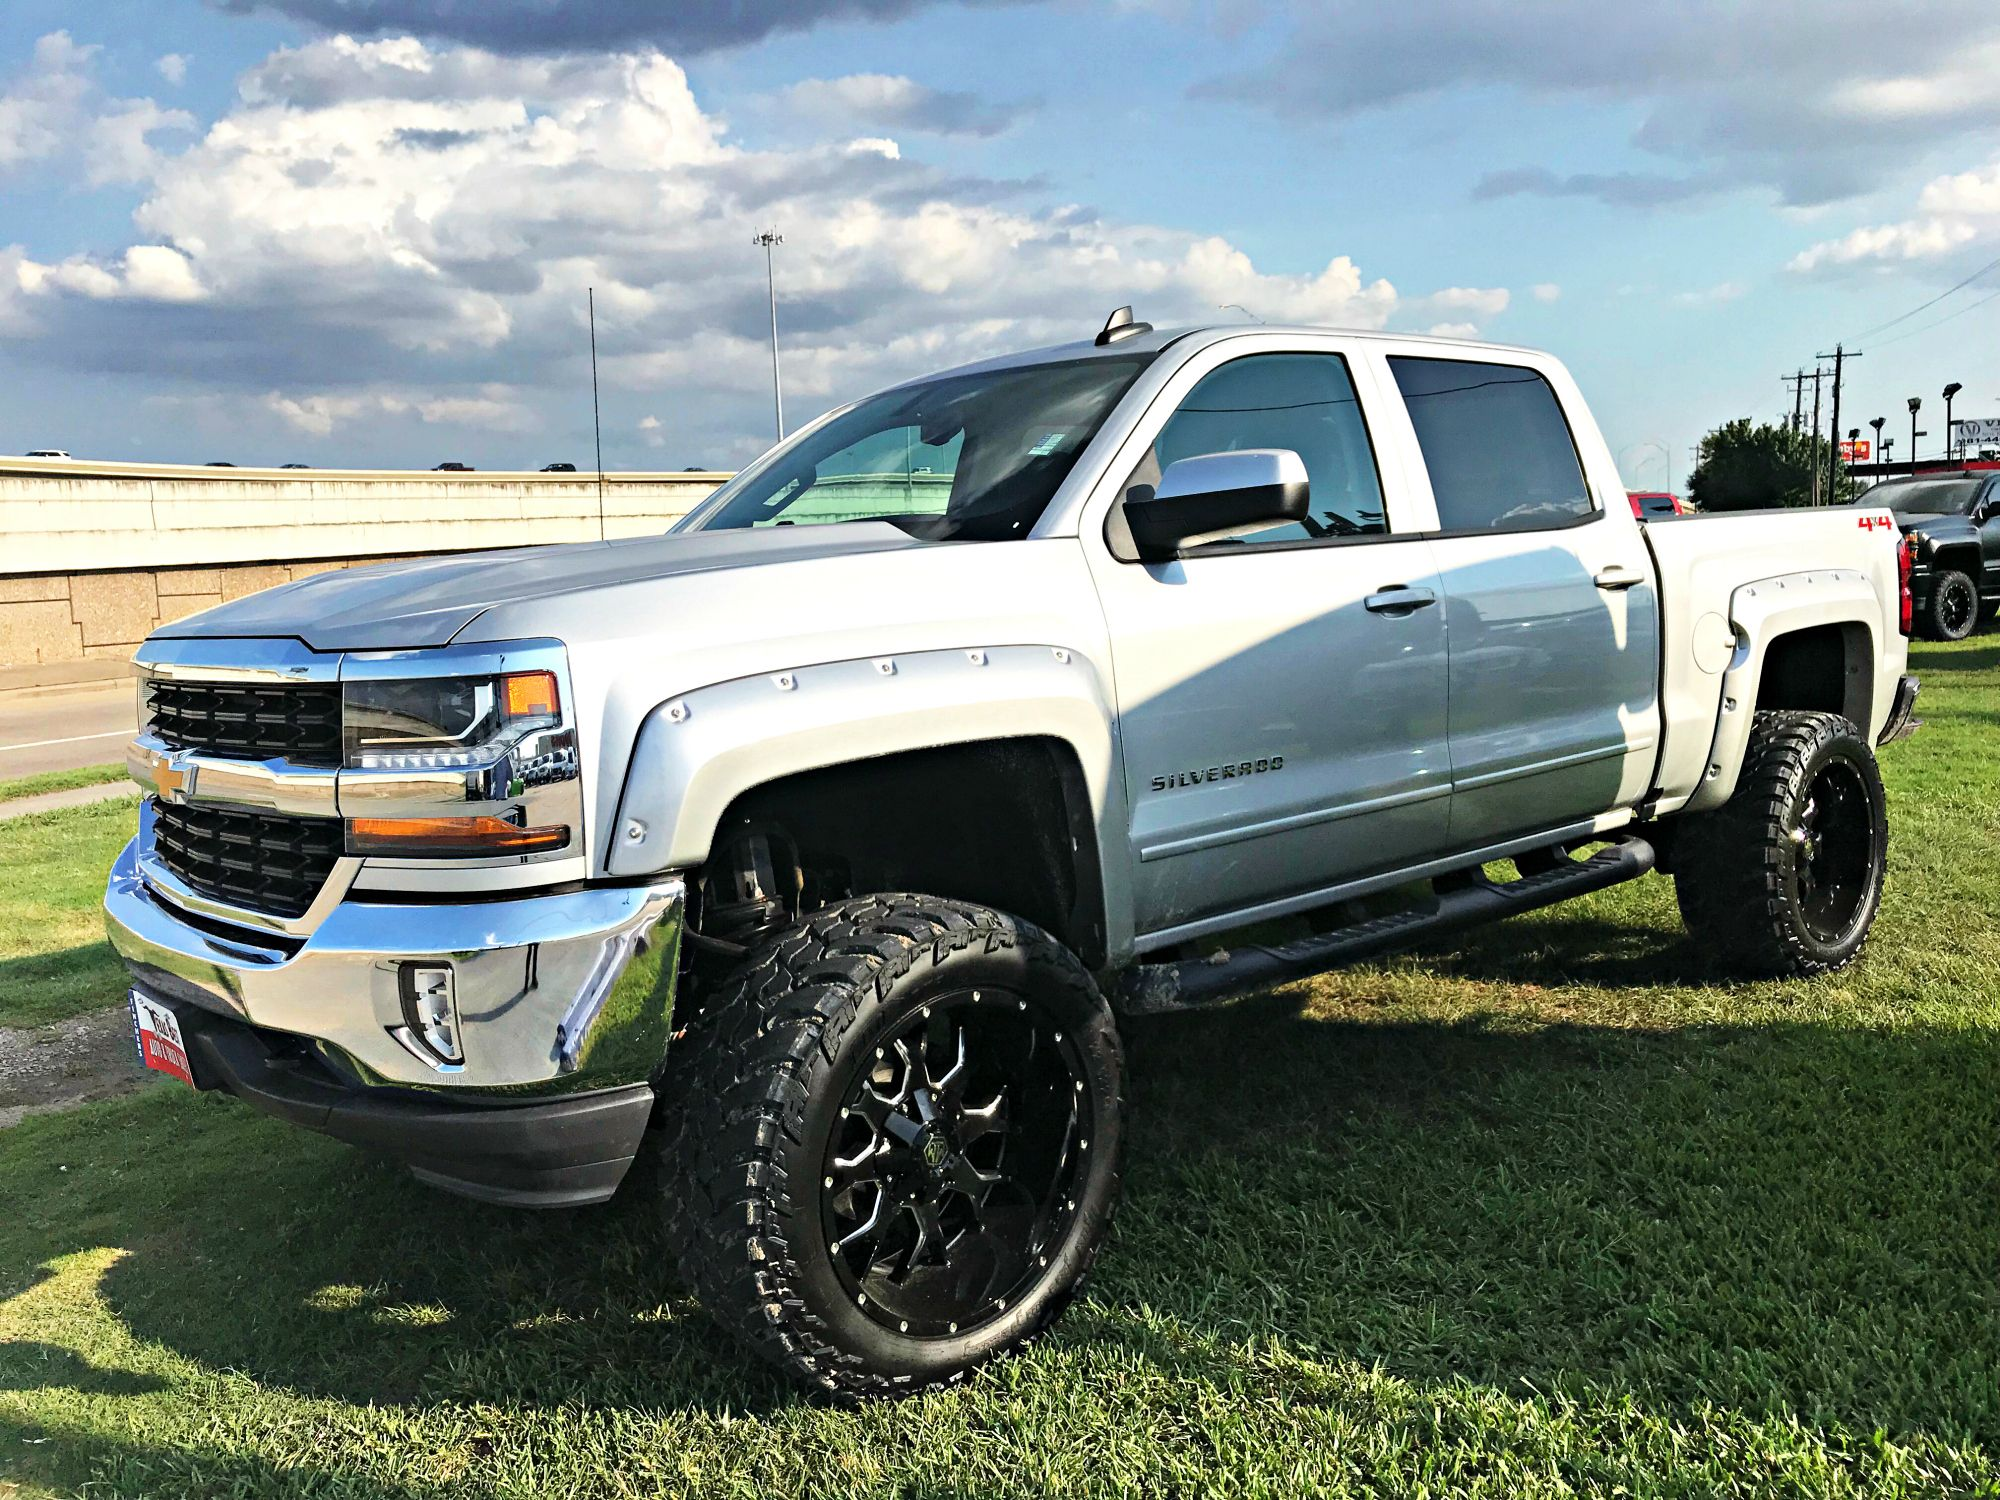 Check This Out Brand New Lift Flares Wheels And Tires 2018 Chevrolet Silverado 1500 Lt For Sale At Fincher S Texas Lifted Trucks Trucks Diesel Trucks